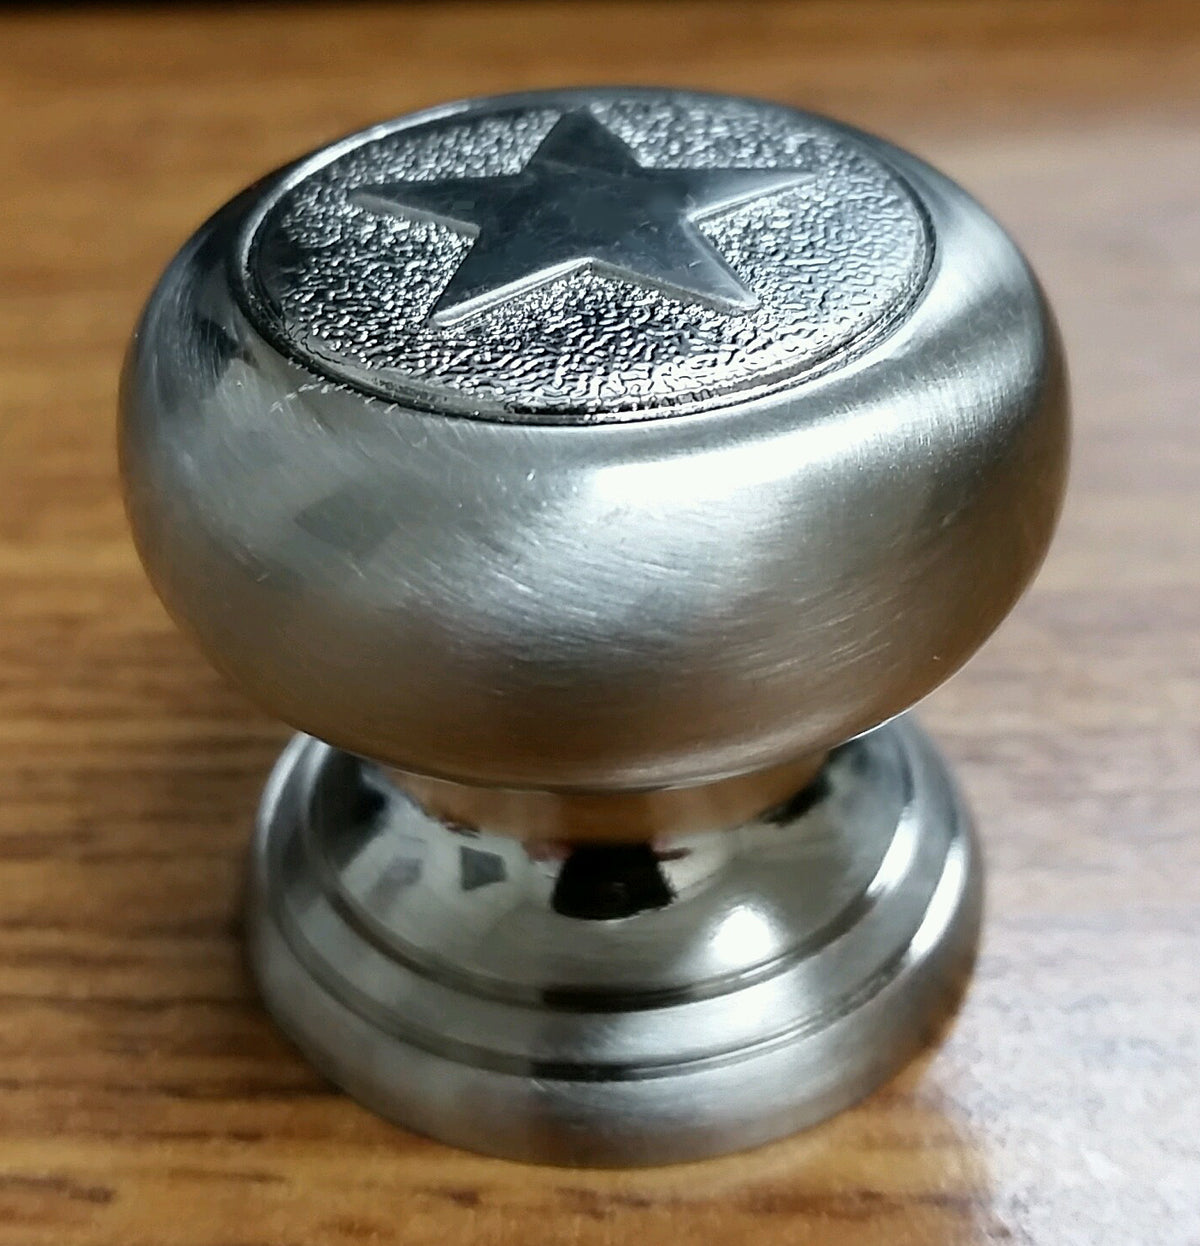 (Set of 10) Western Style Star Knobs, Satin Nickel Finish - Wild West Hardware